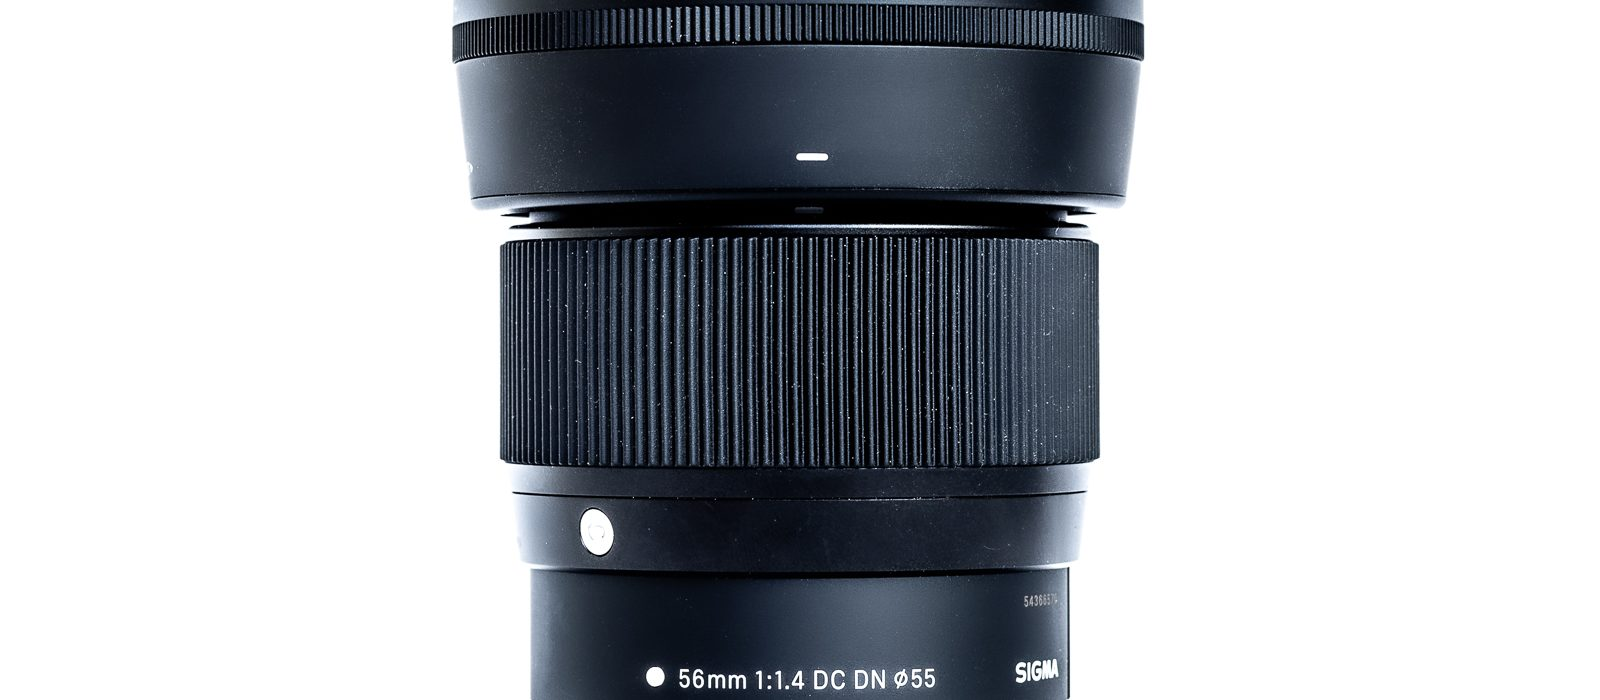 Sigma 56mm 1.4 DC DN | Norbert Eder Photography